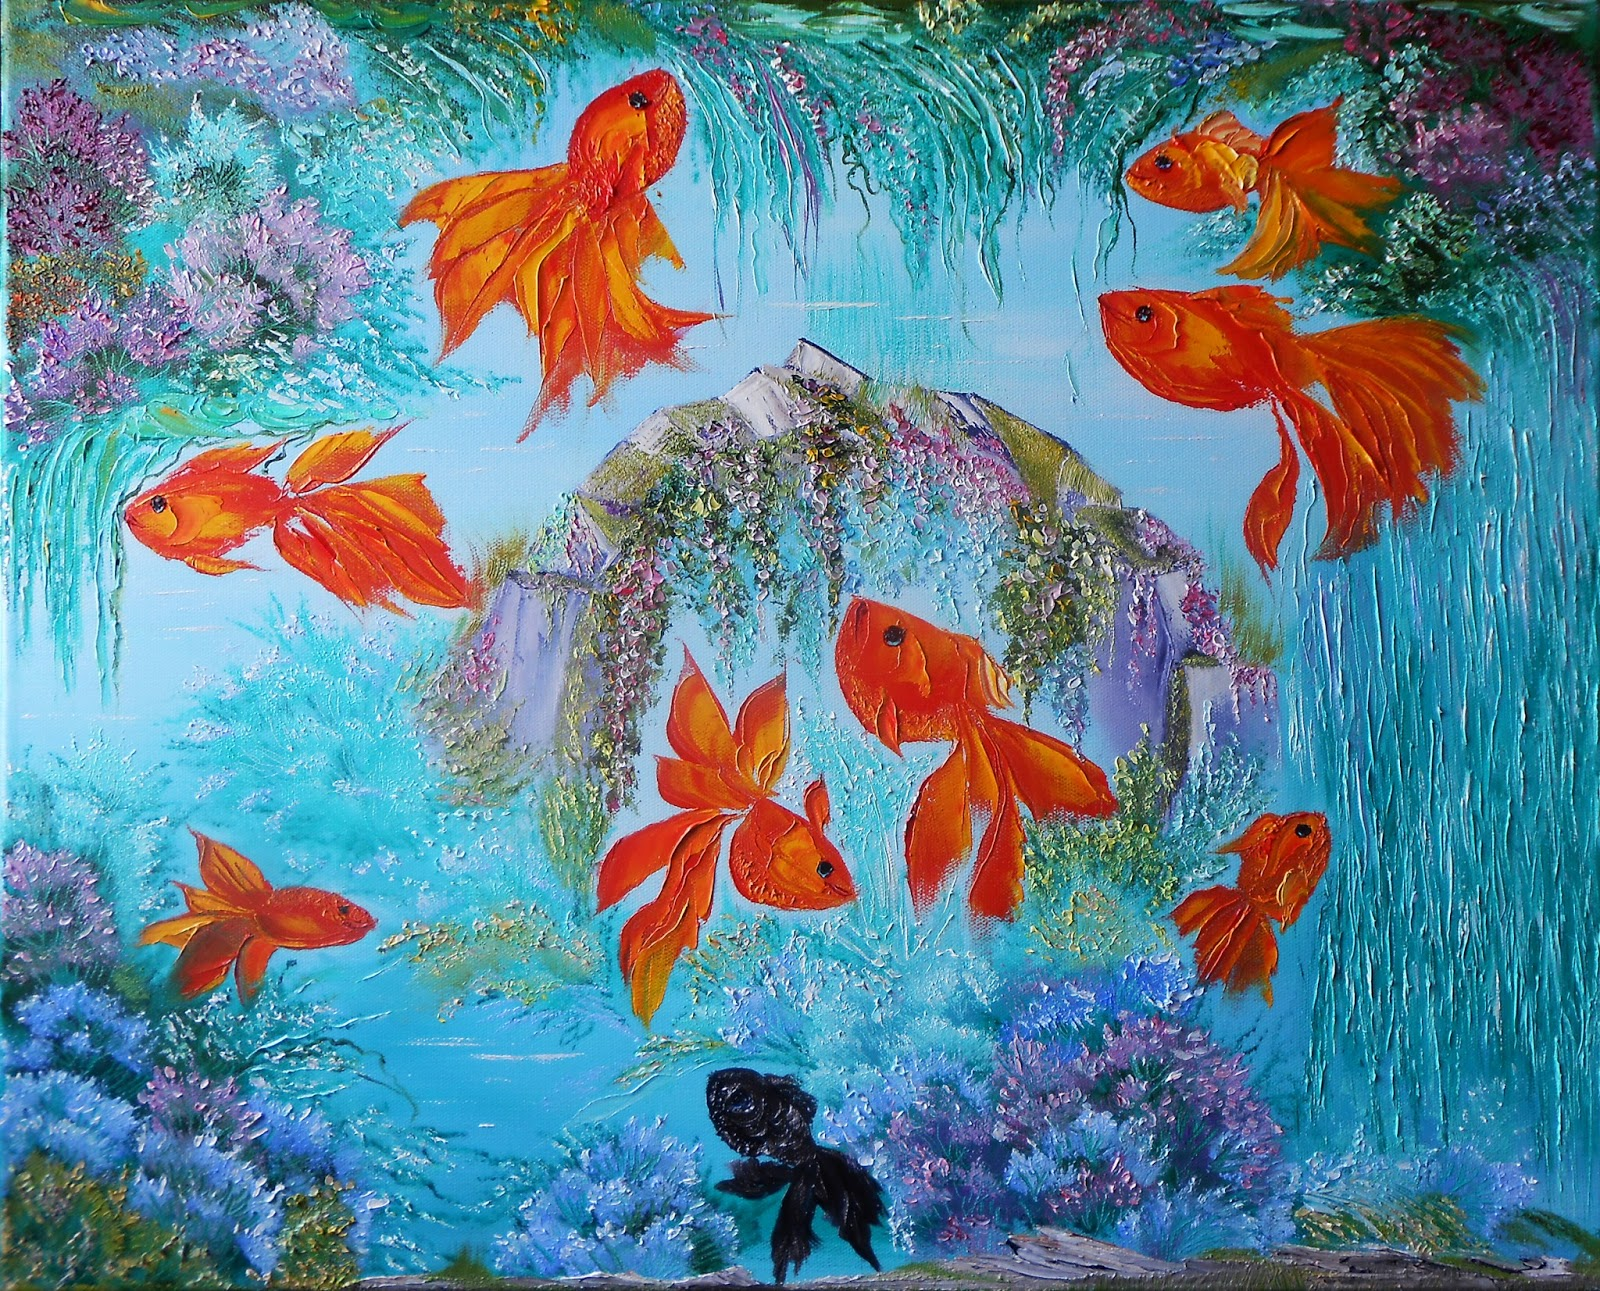 feng shui paintings inspiration photo gallery billion